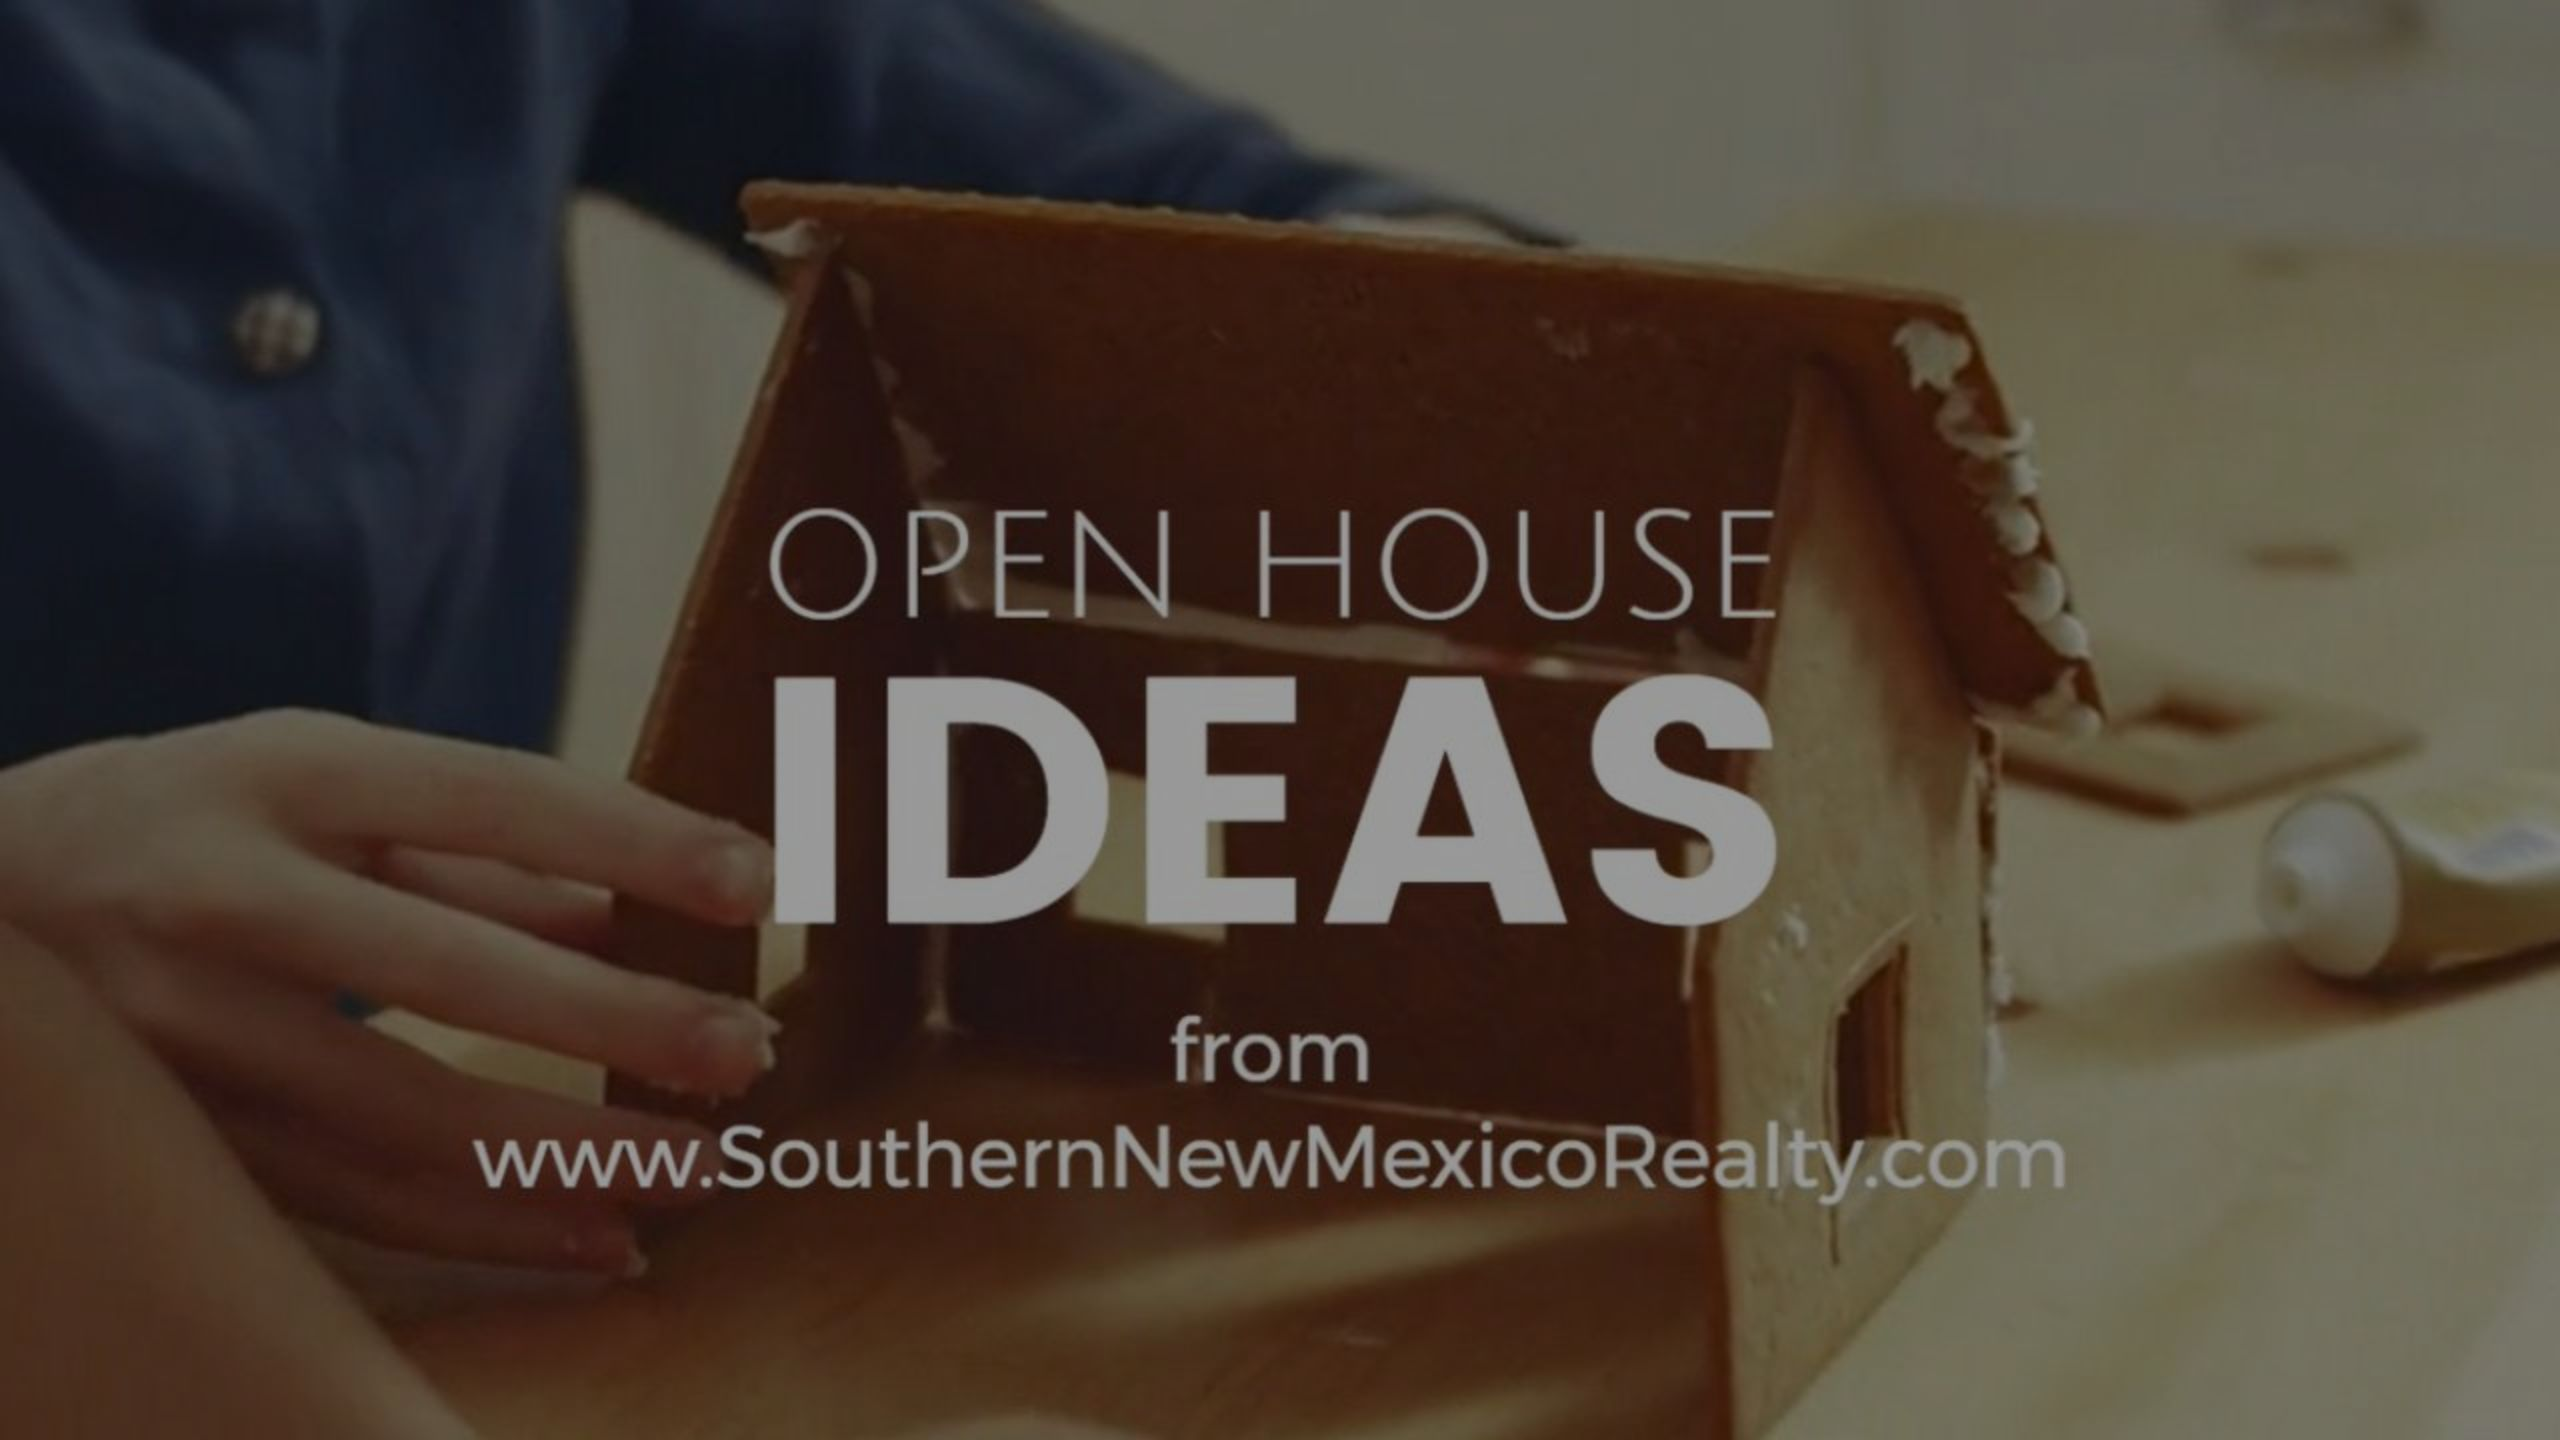 Open House Ideas to Help Increase Leads